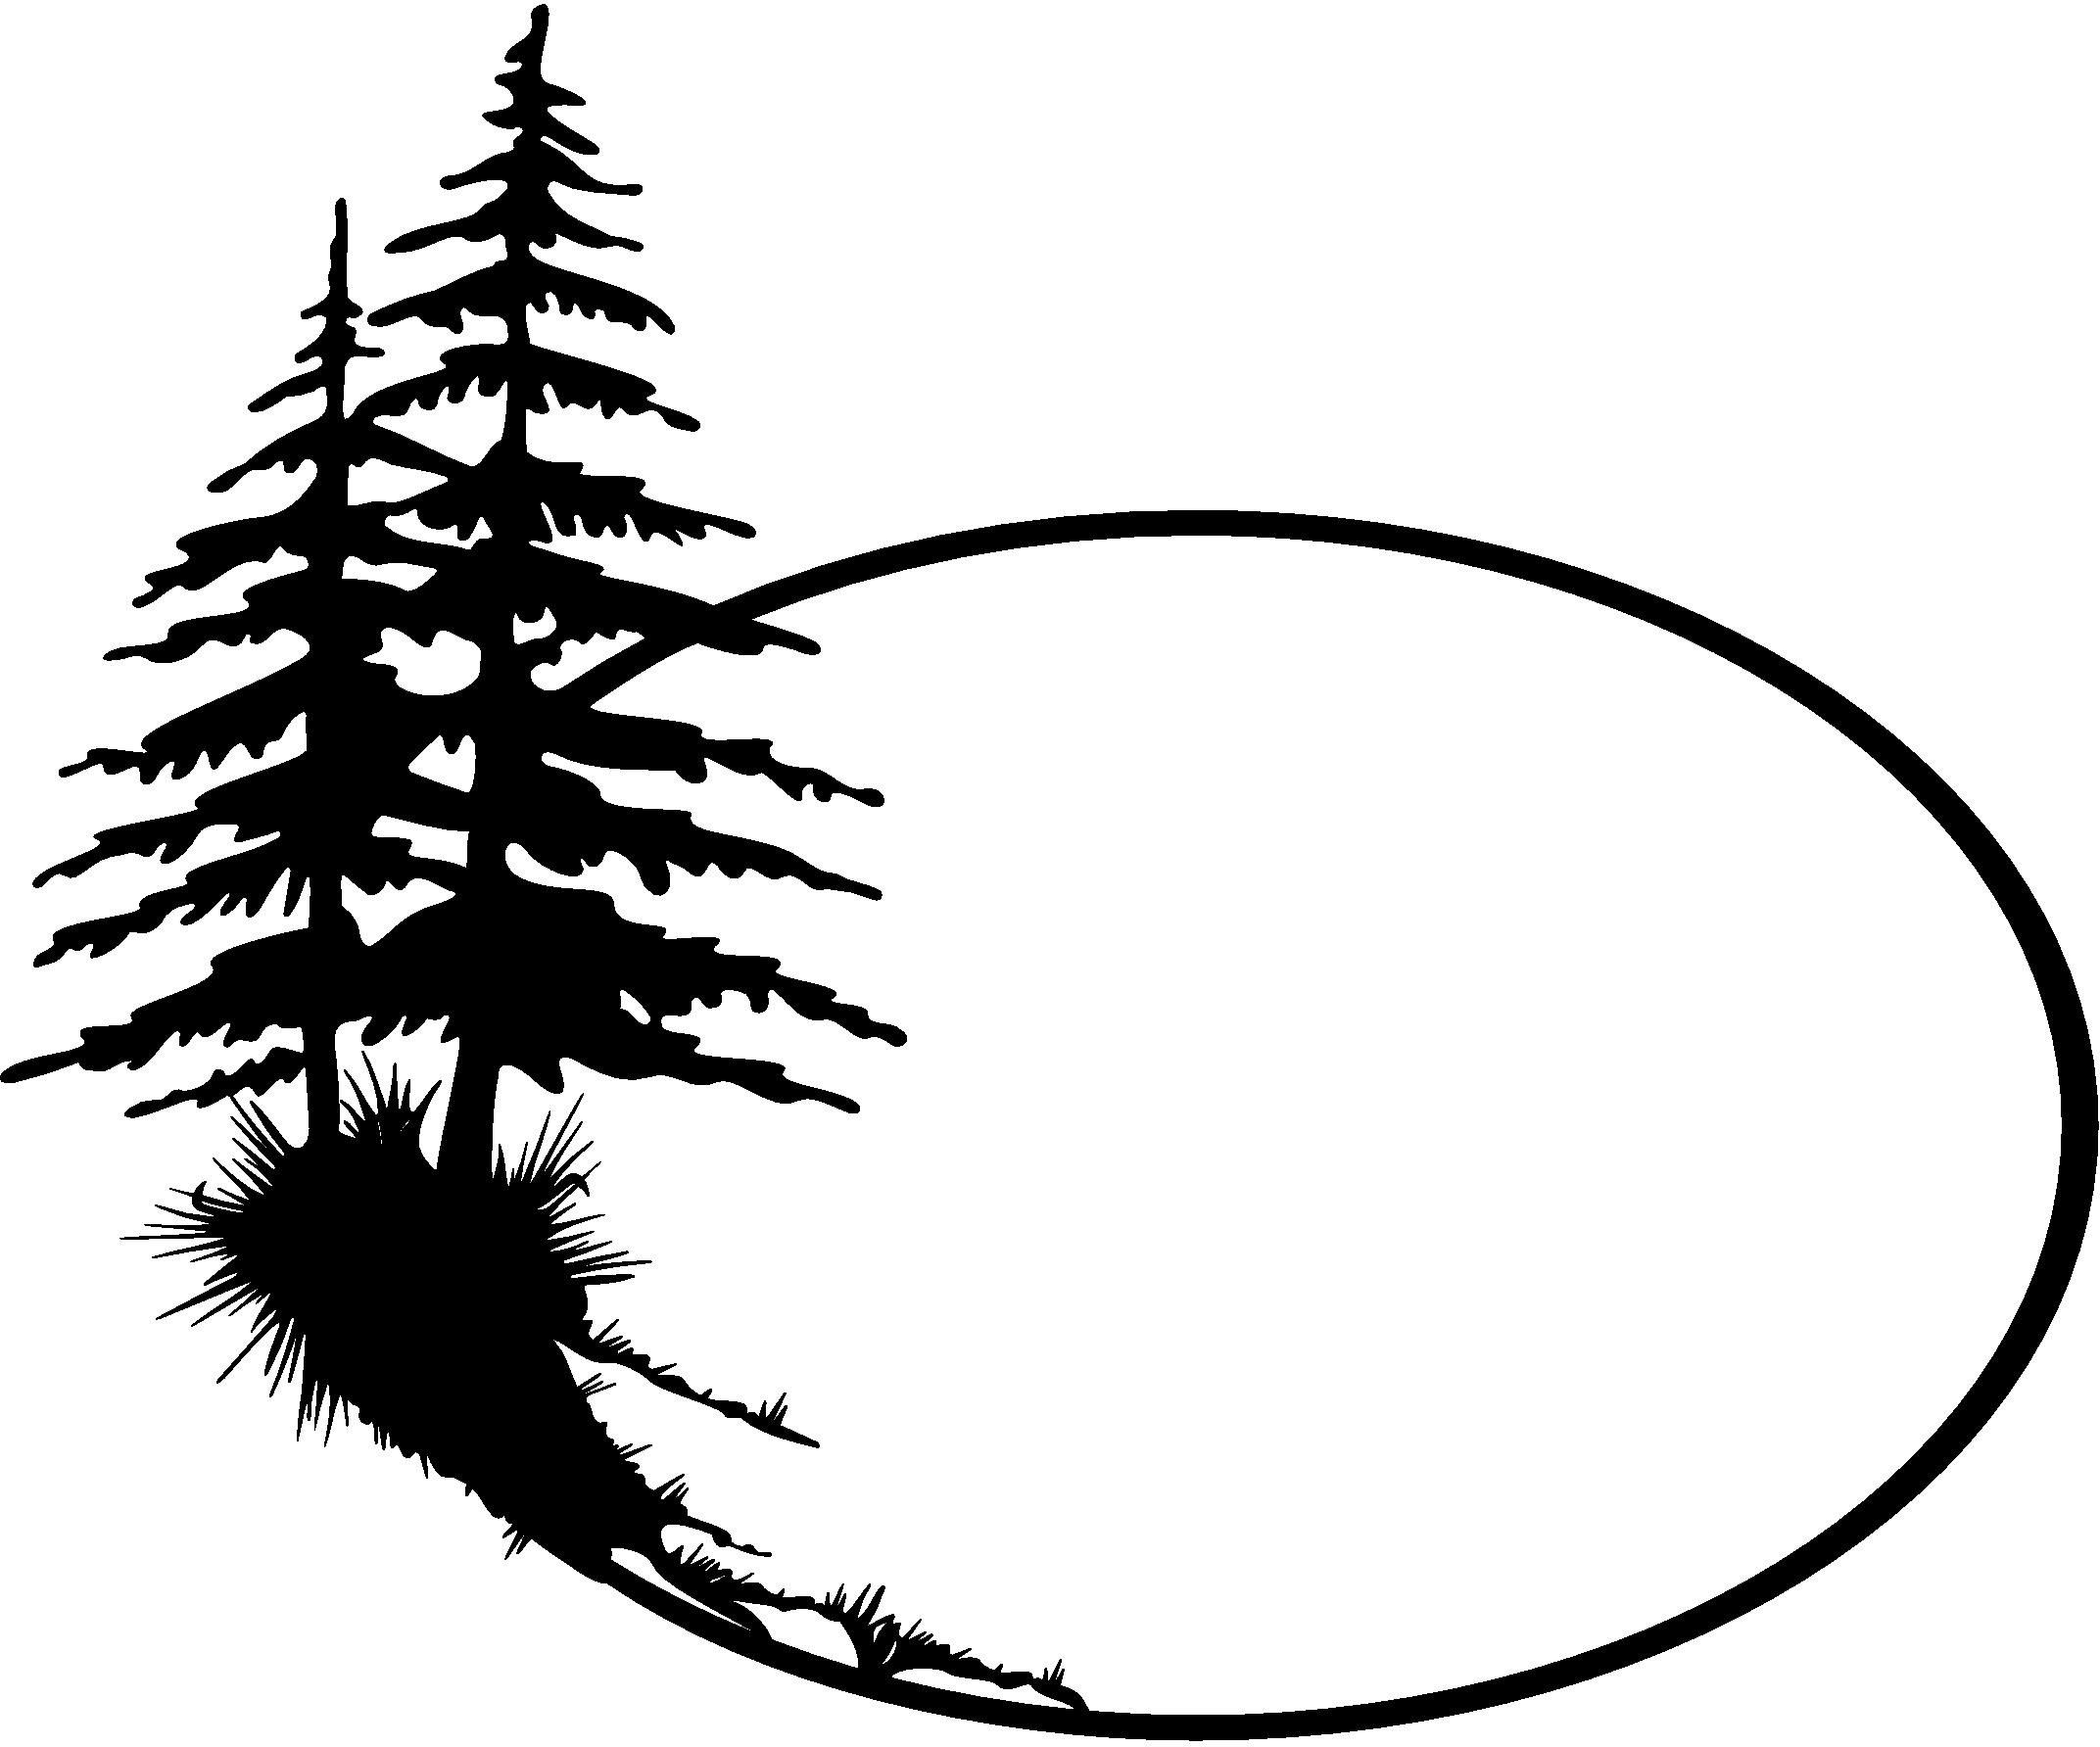 pine tree silhouette clip art clipart pine silhouettes pinterest rh pinterest com free clipart pine tree silhouette Primitive Pine Tree Clip Art